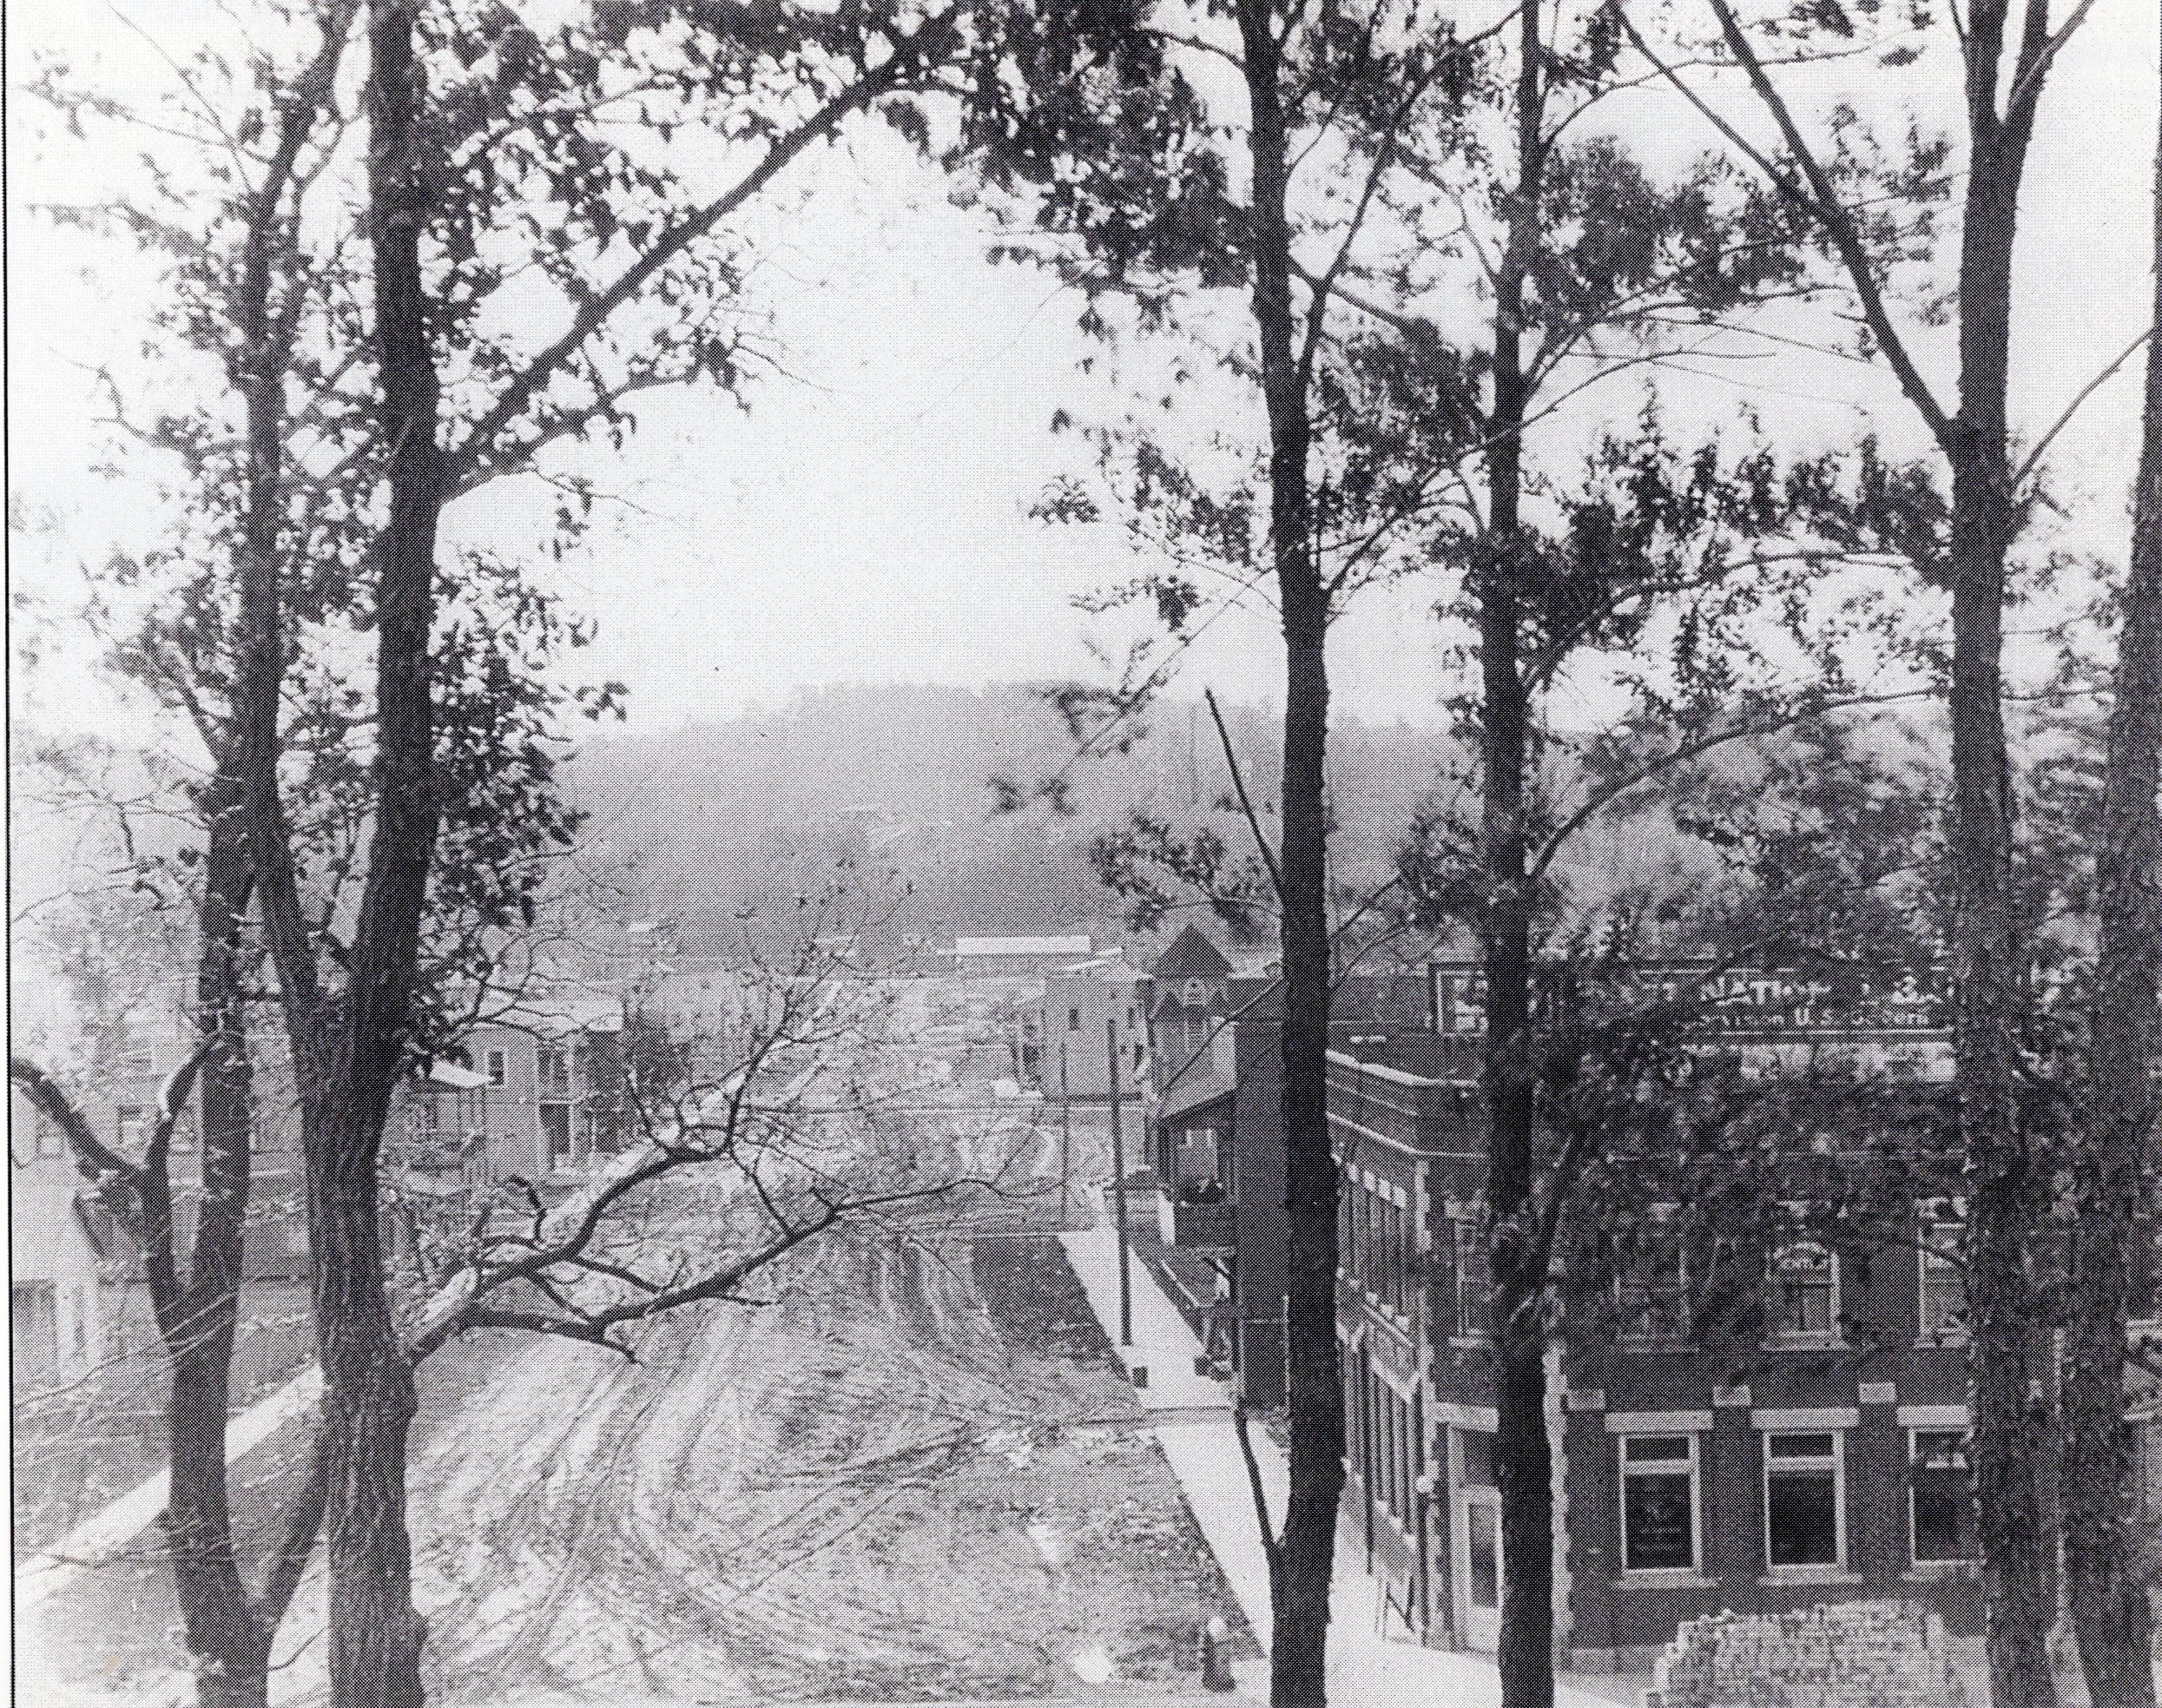 View from the top of the Criel Mound looking southward along unpaved D Street, circa 1920. The Baptist Church would soon be built on the right hand side about two blocks away.